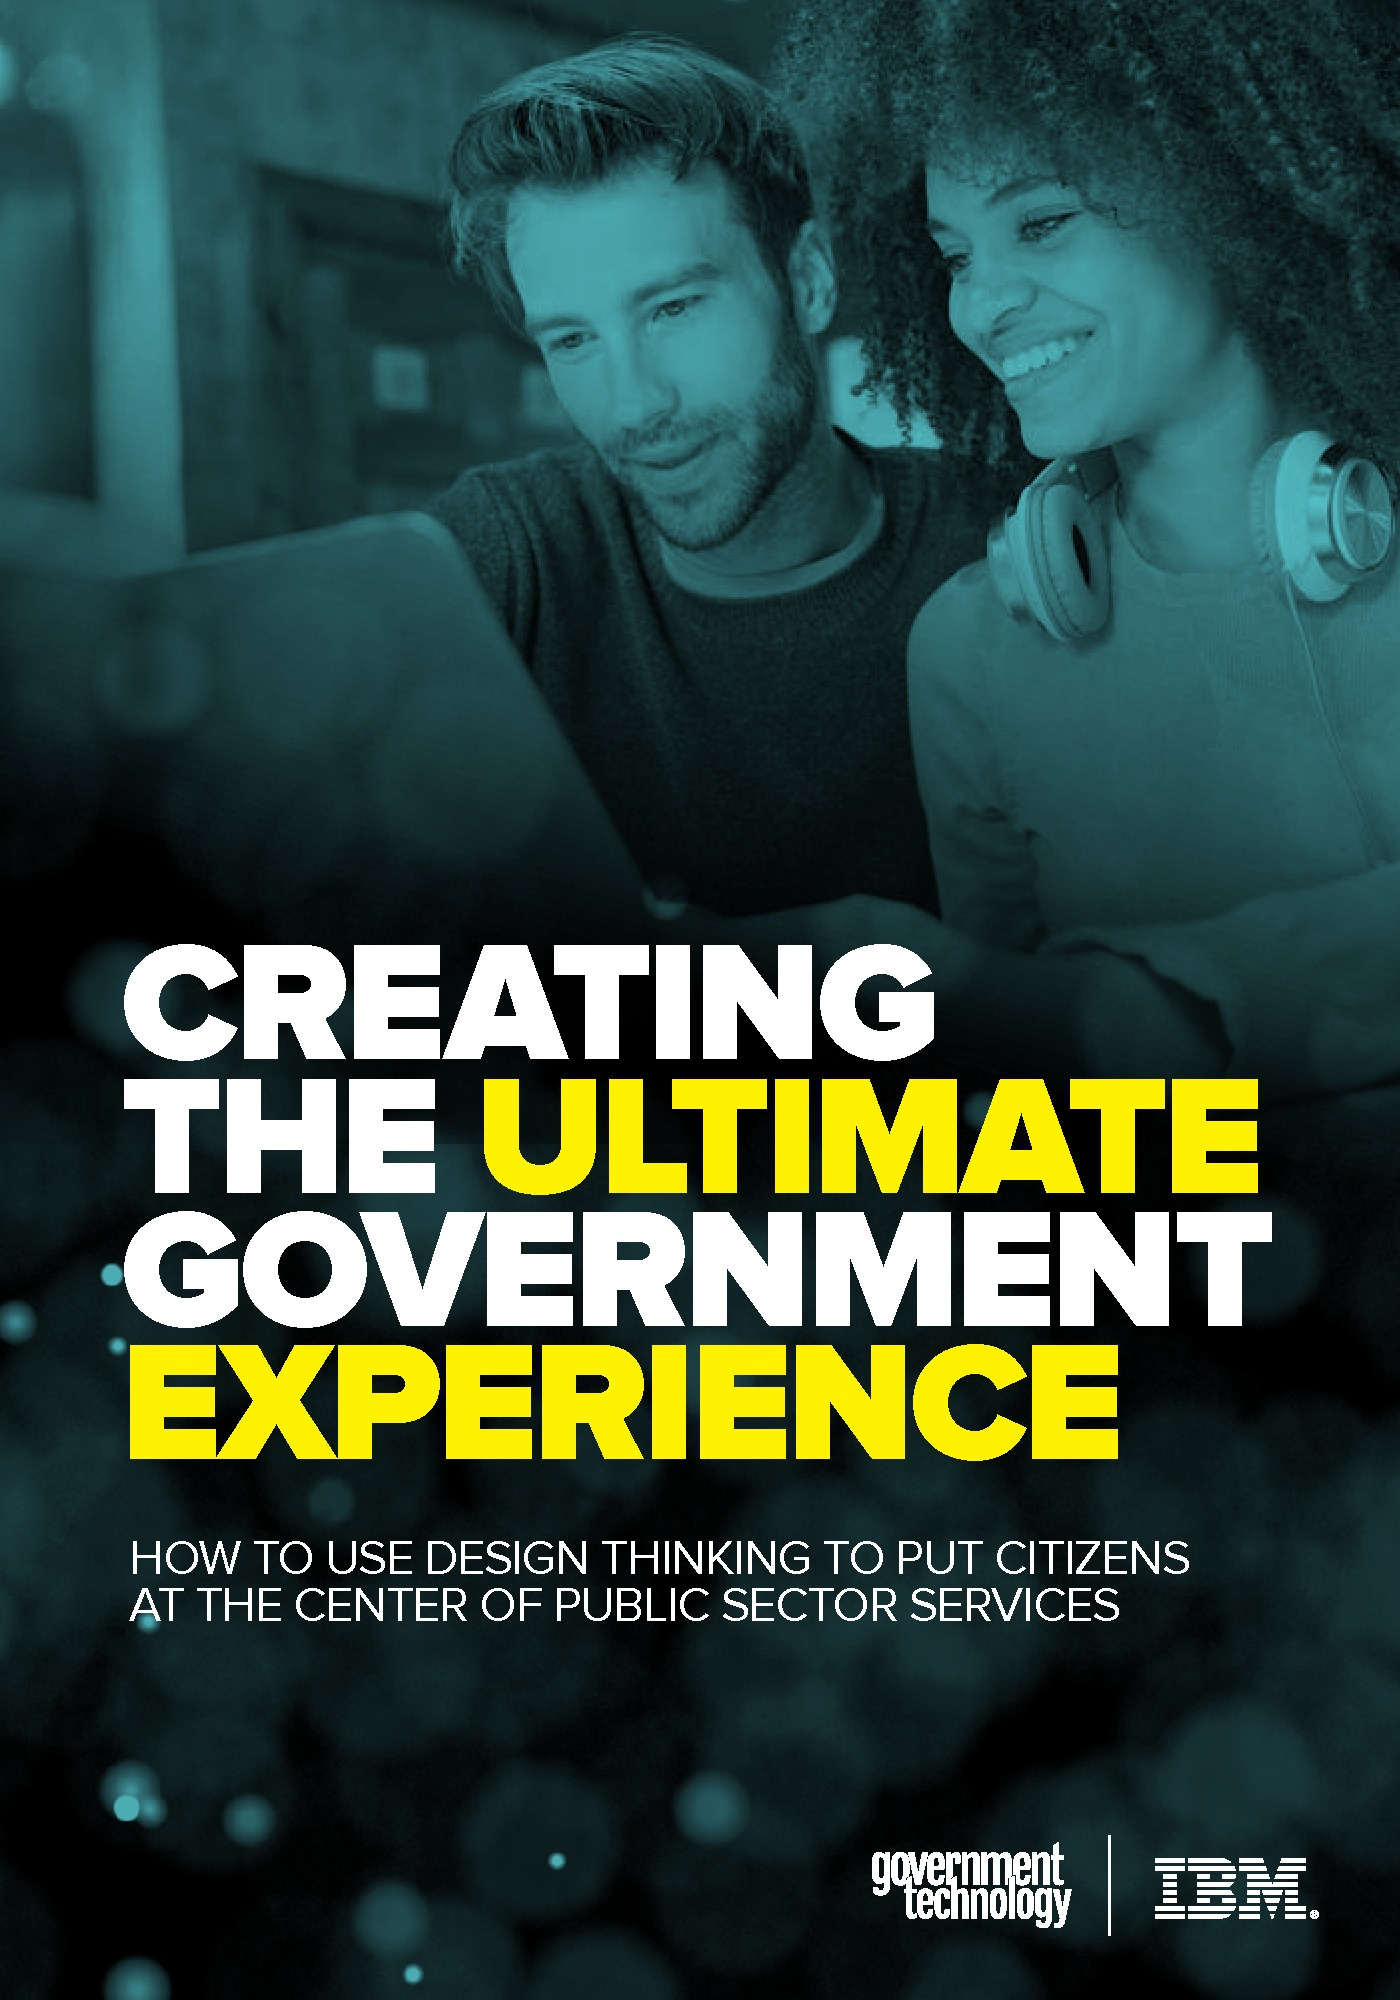 GT - IBM - Handbook - 180925 - Creating the Ultimate Government Experience